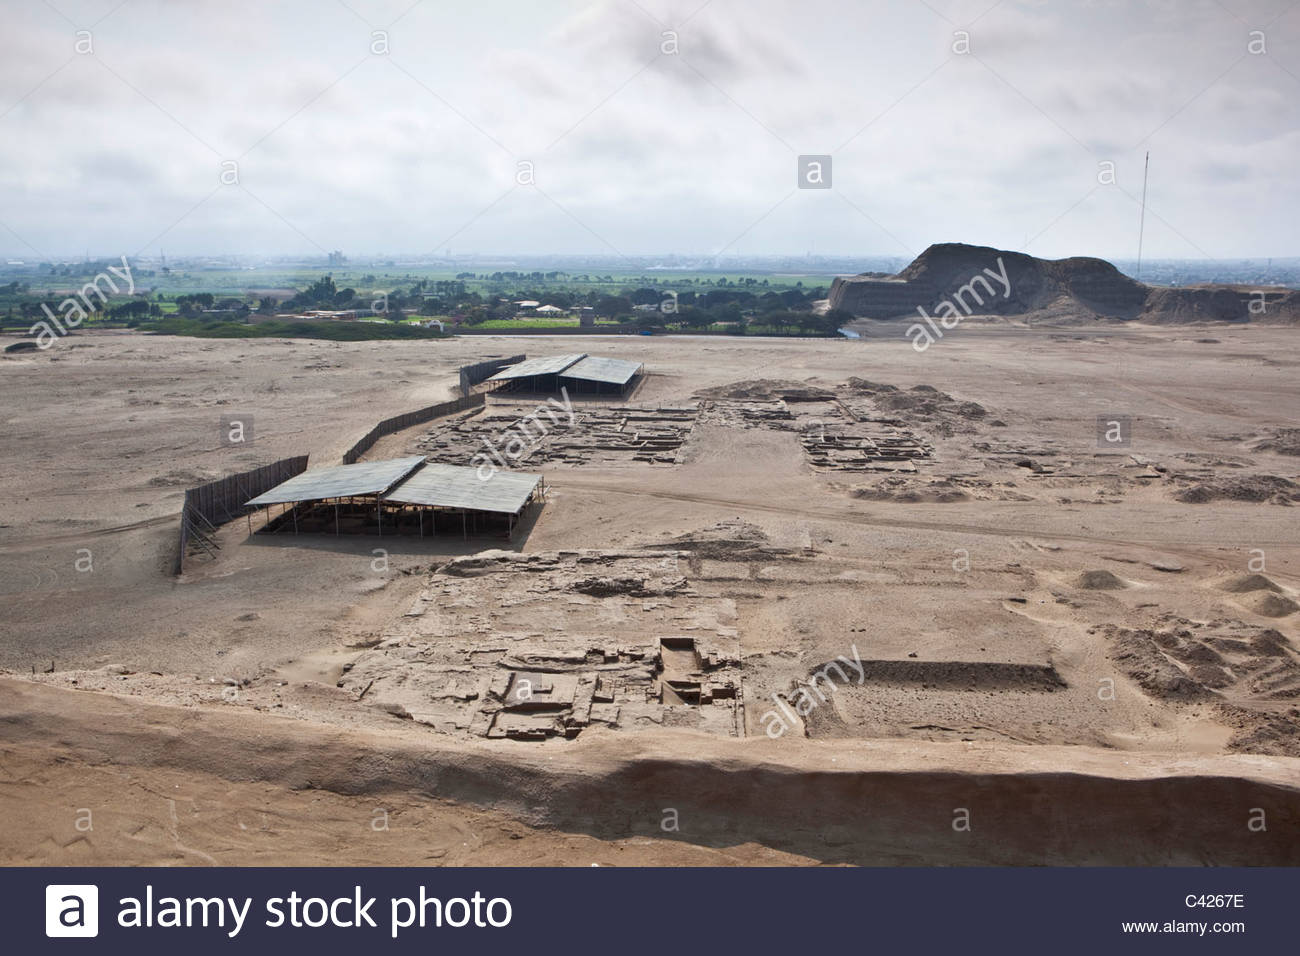 Huaca del Sol. Foreground the urban area. - Stock Image